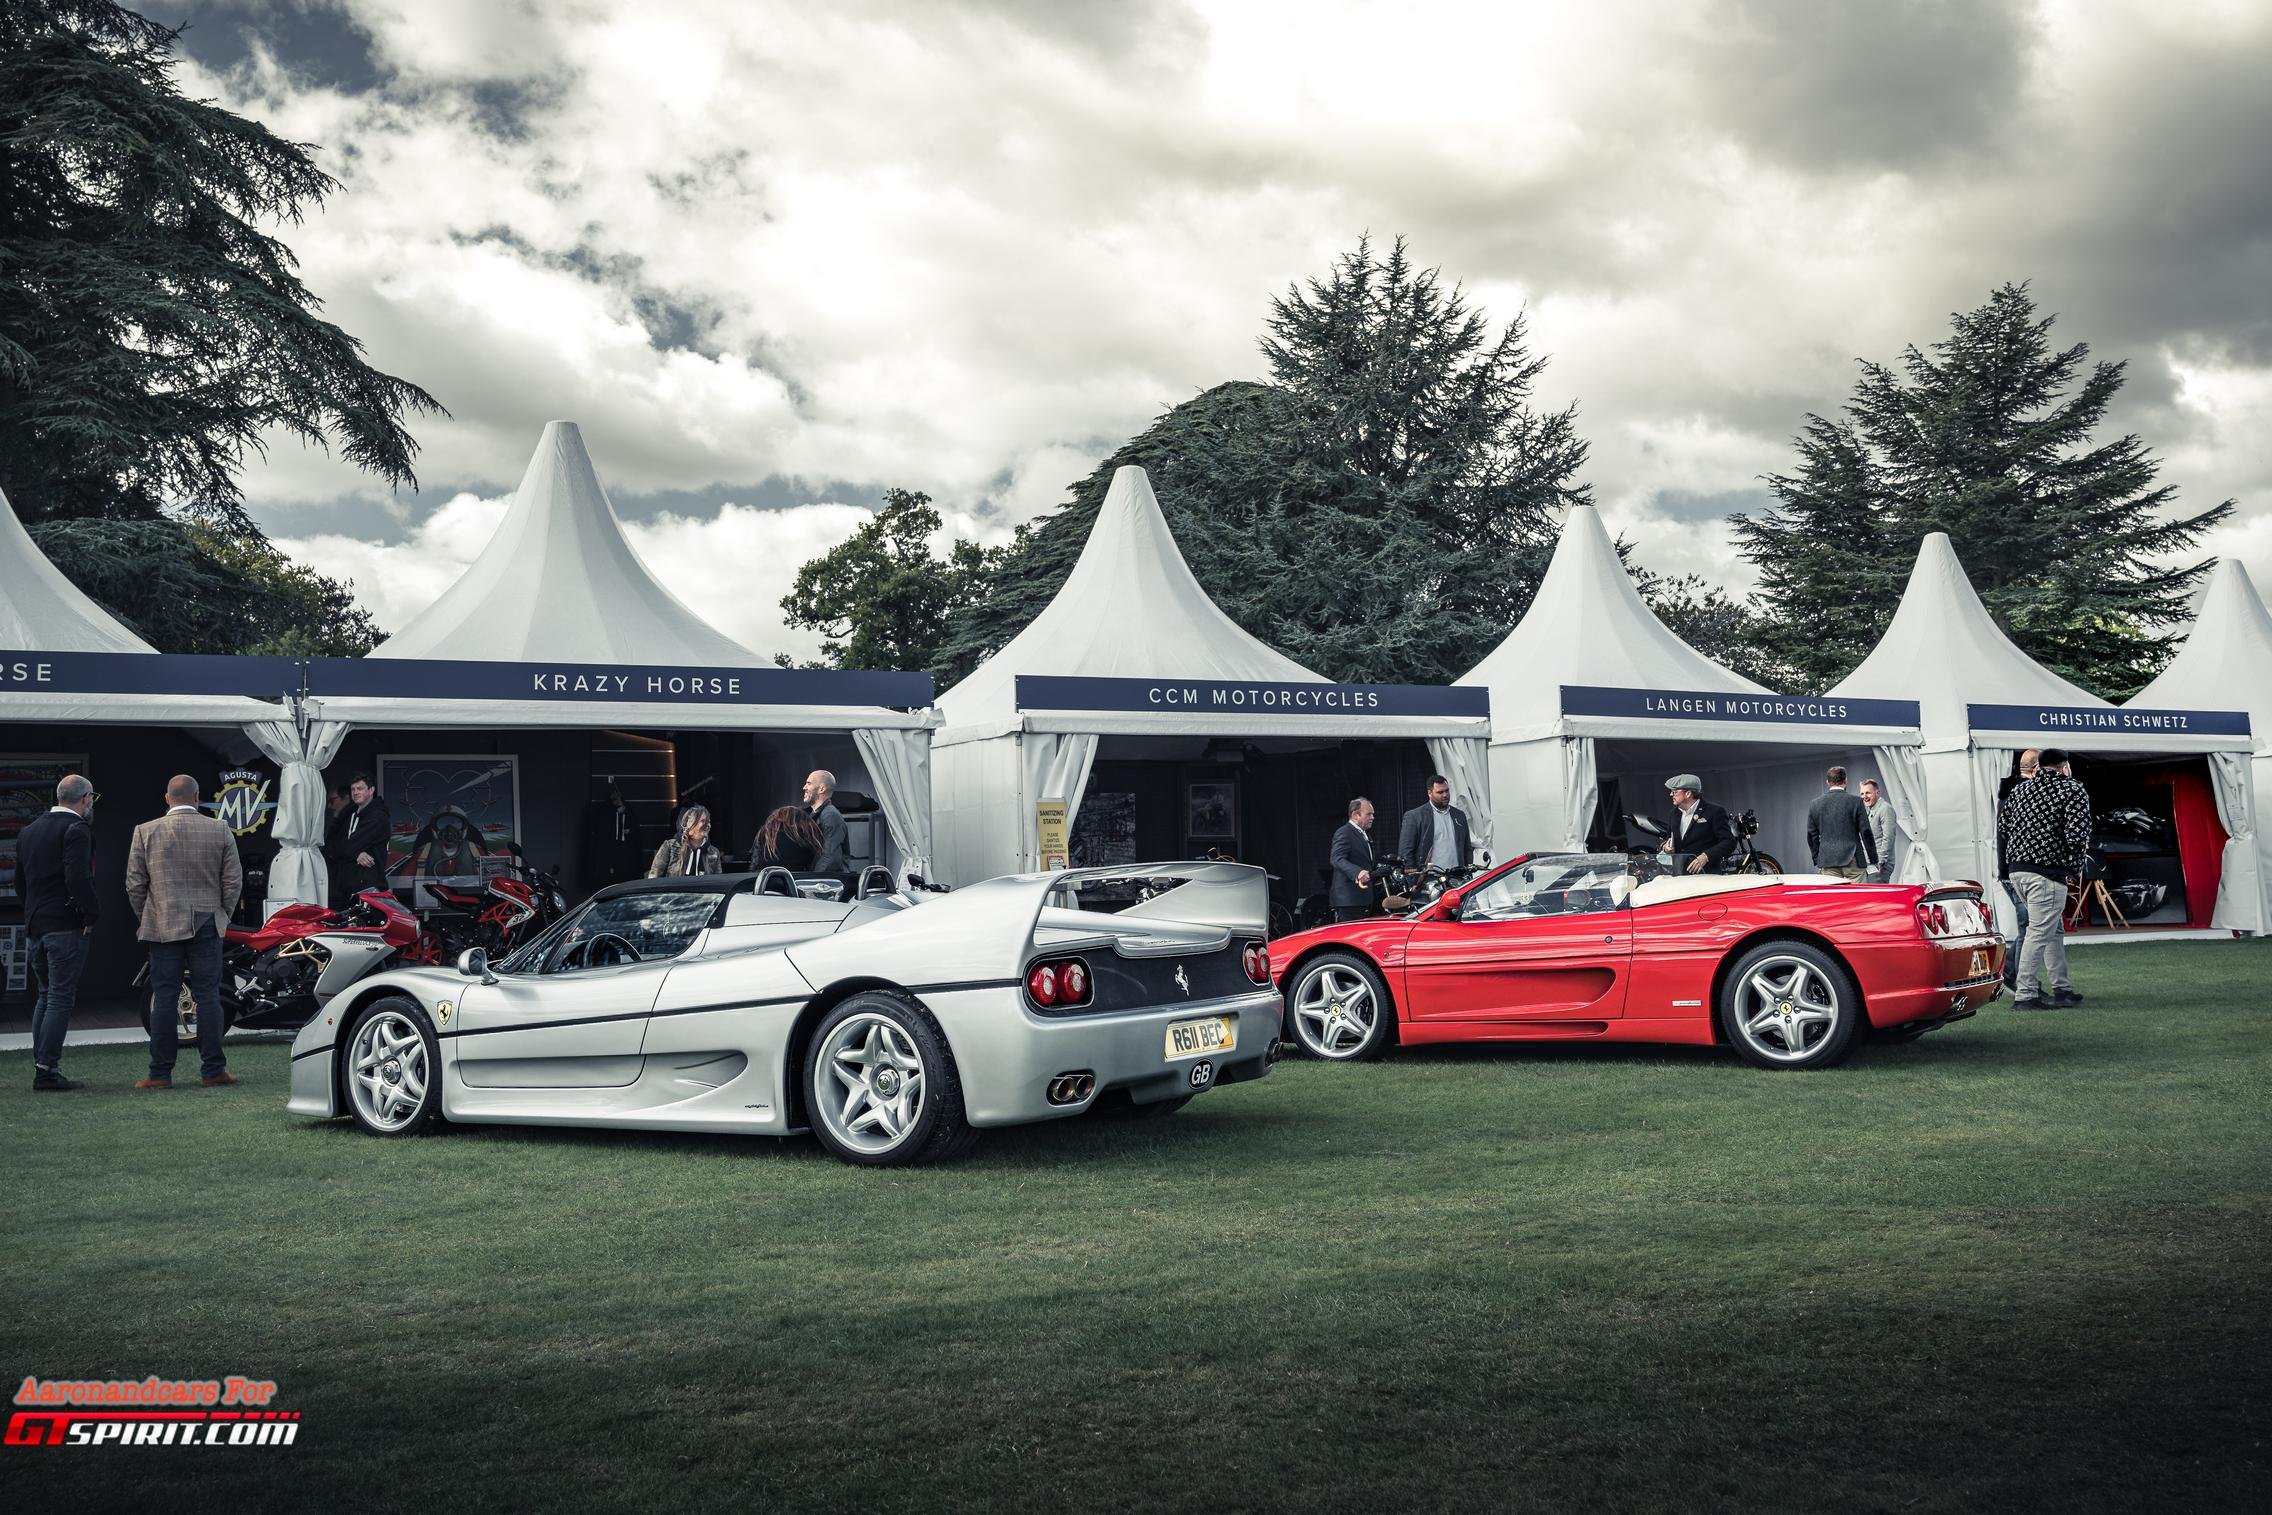 Salon Prive 2020 Ferrari F50